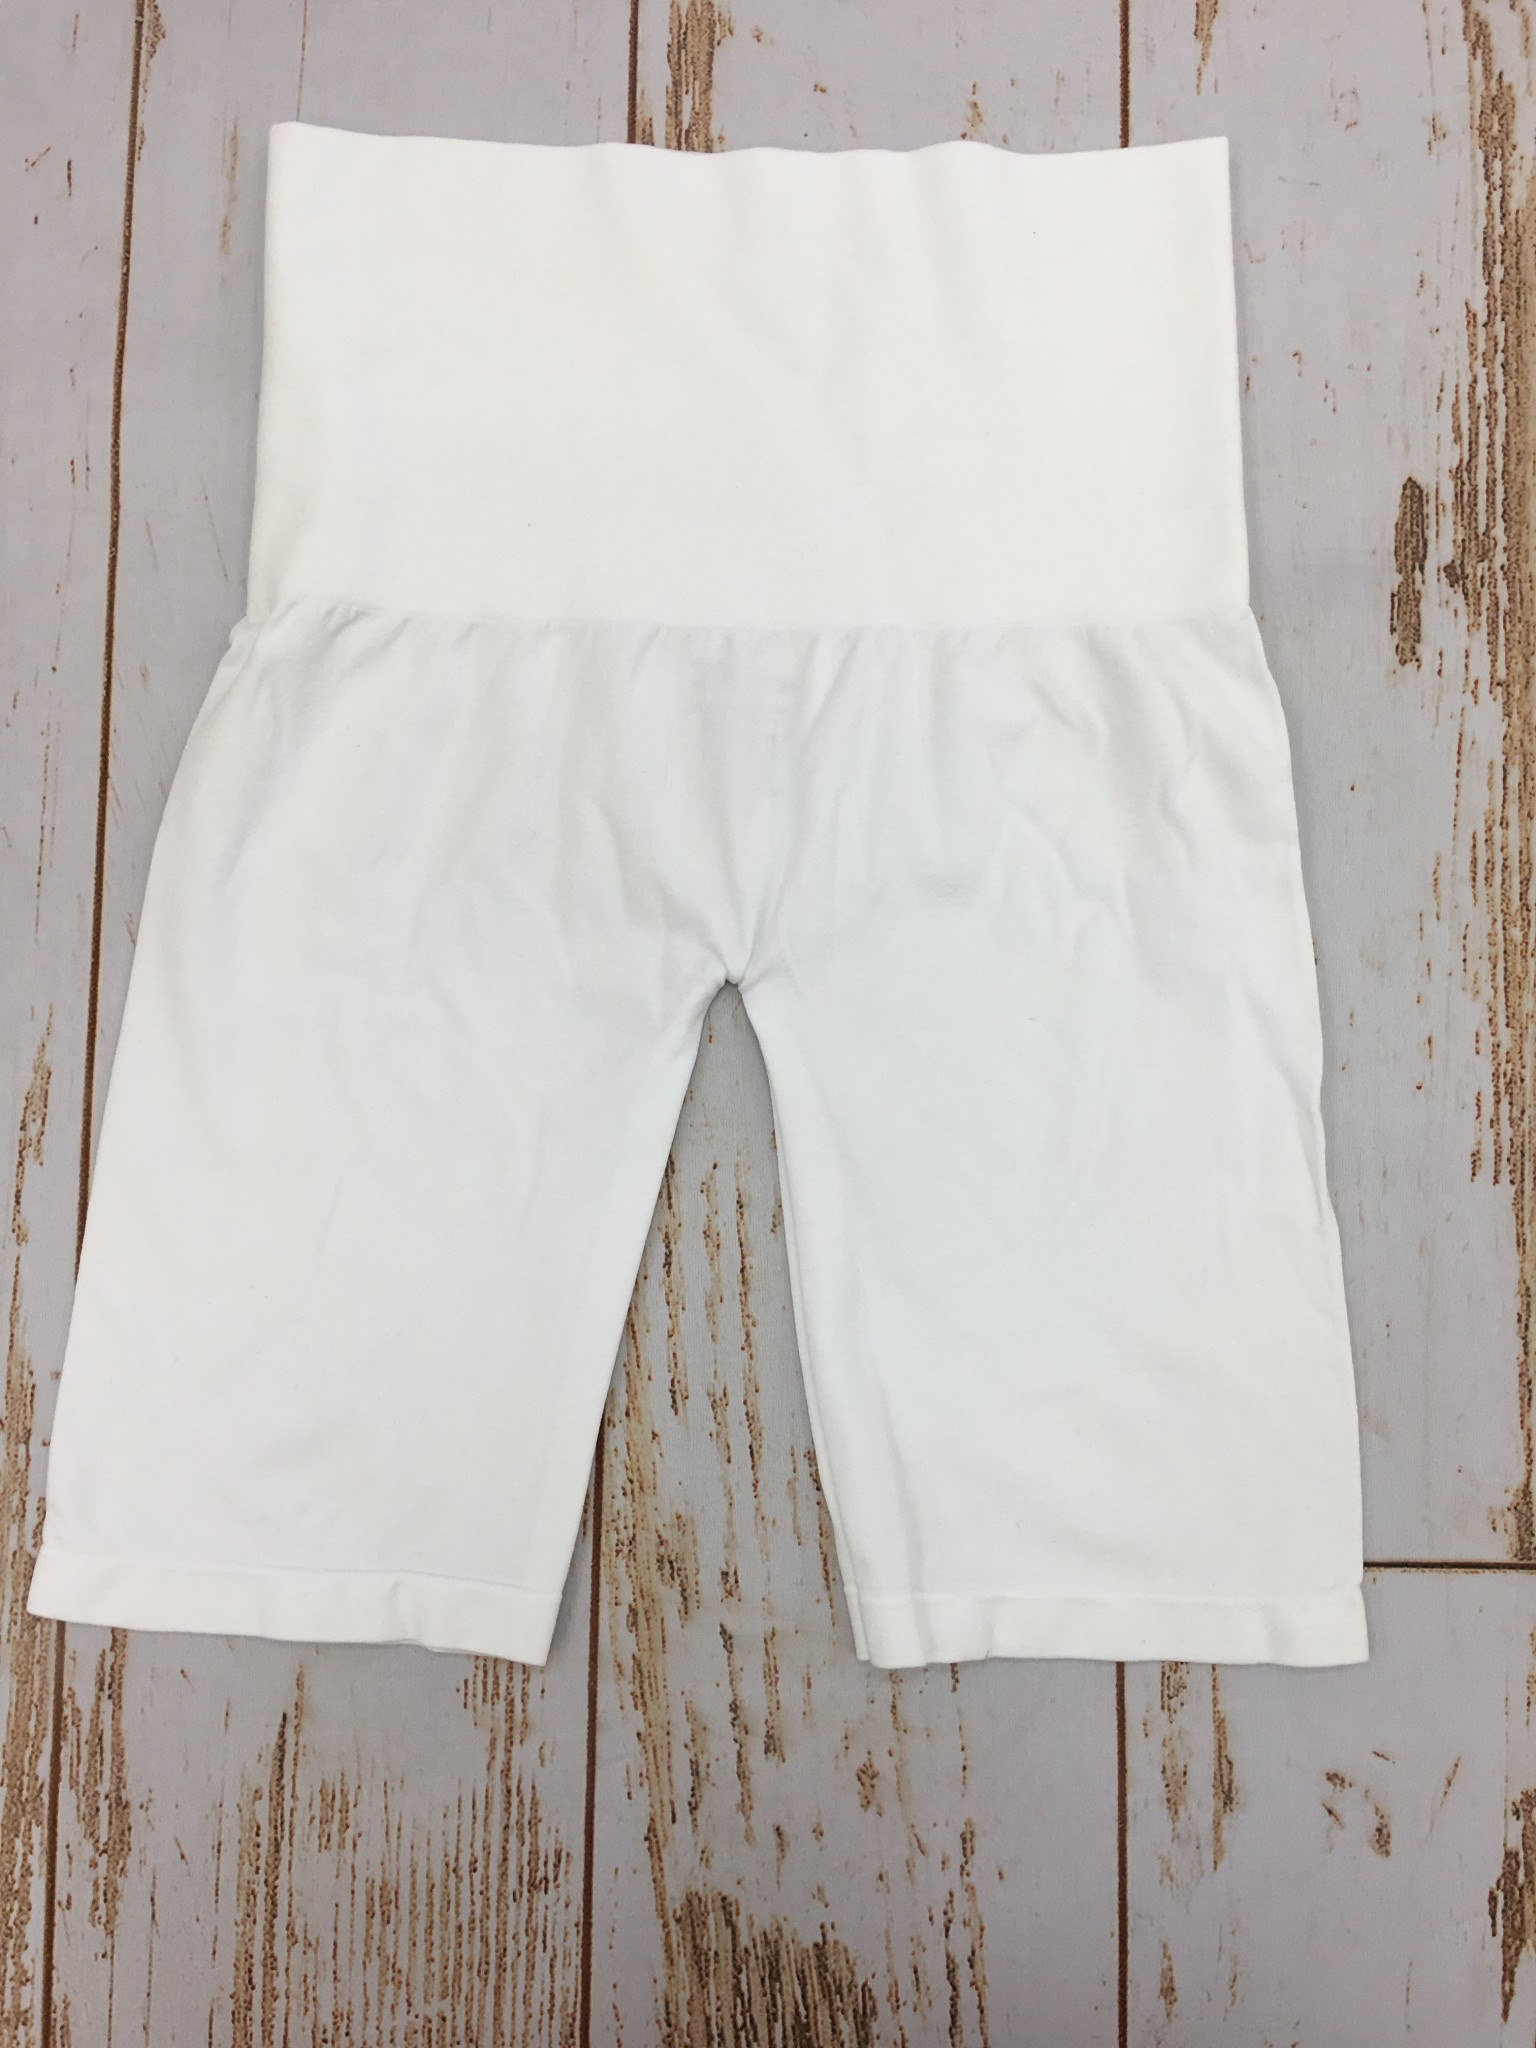 M Rena Control Top Mid Thigh Short White